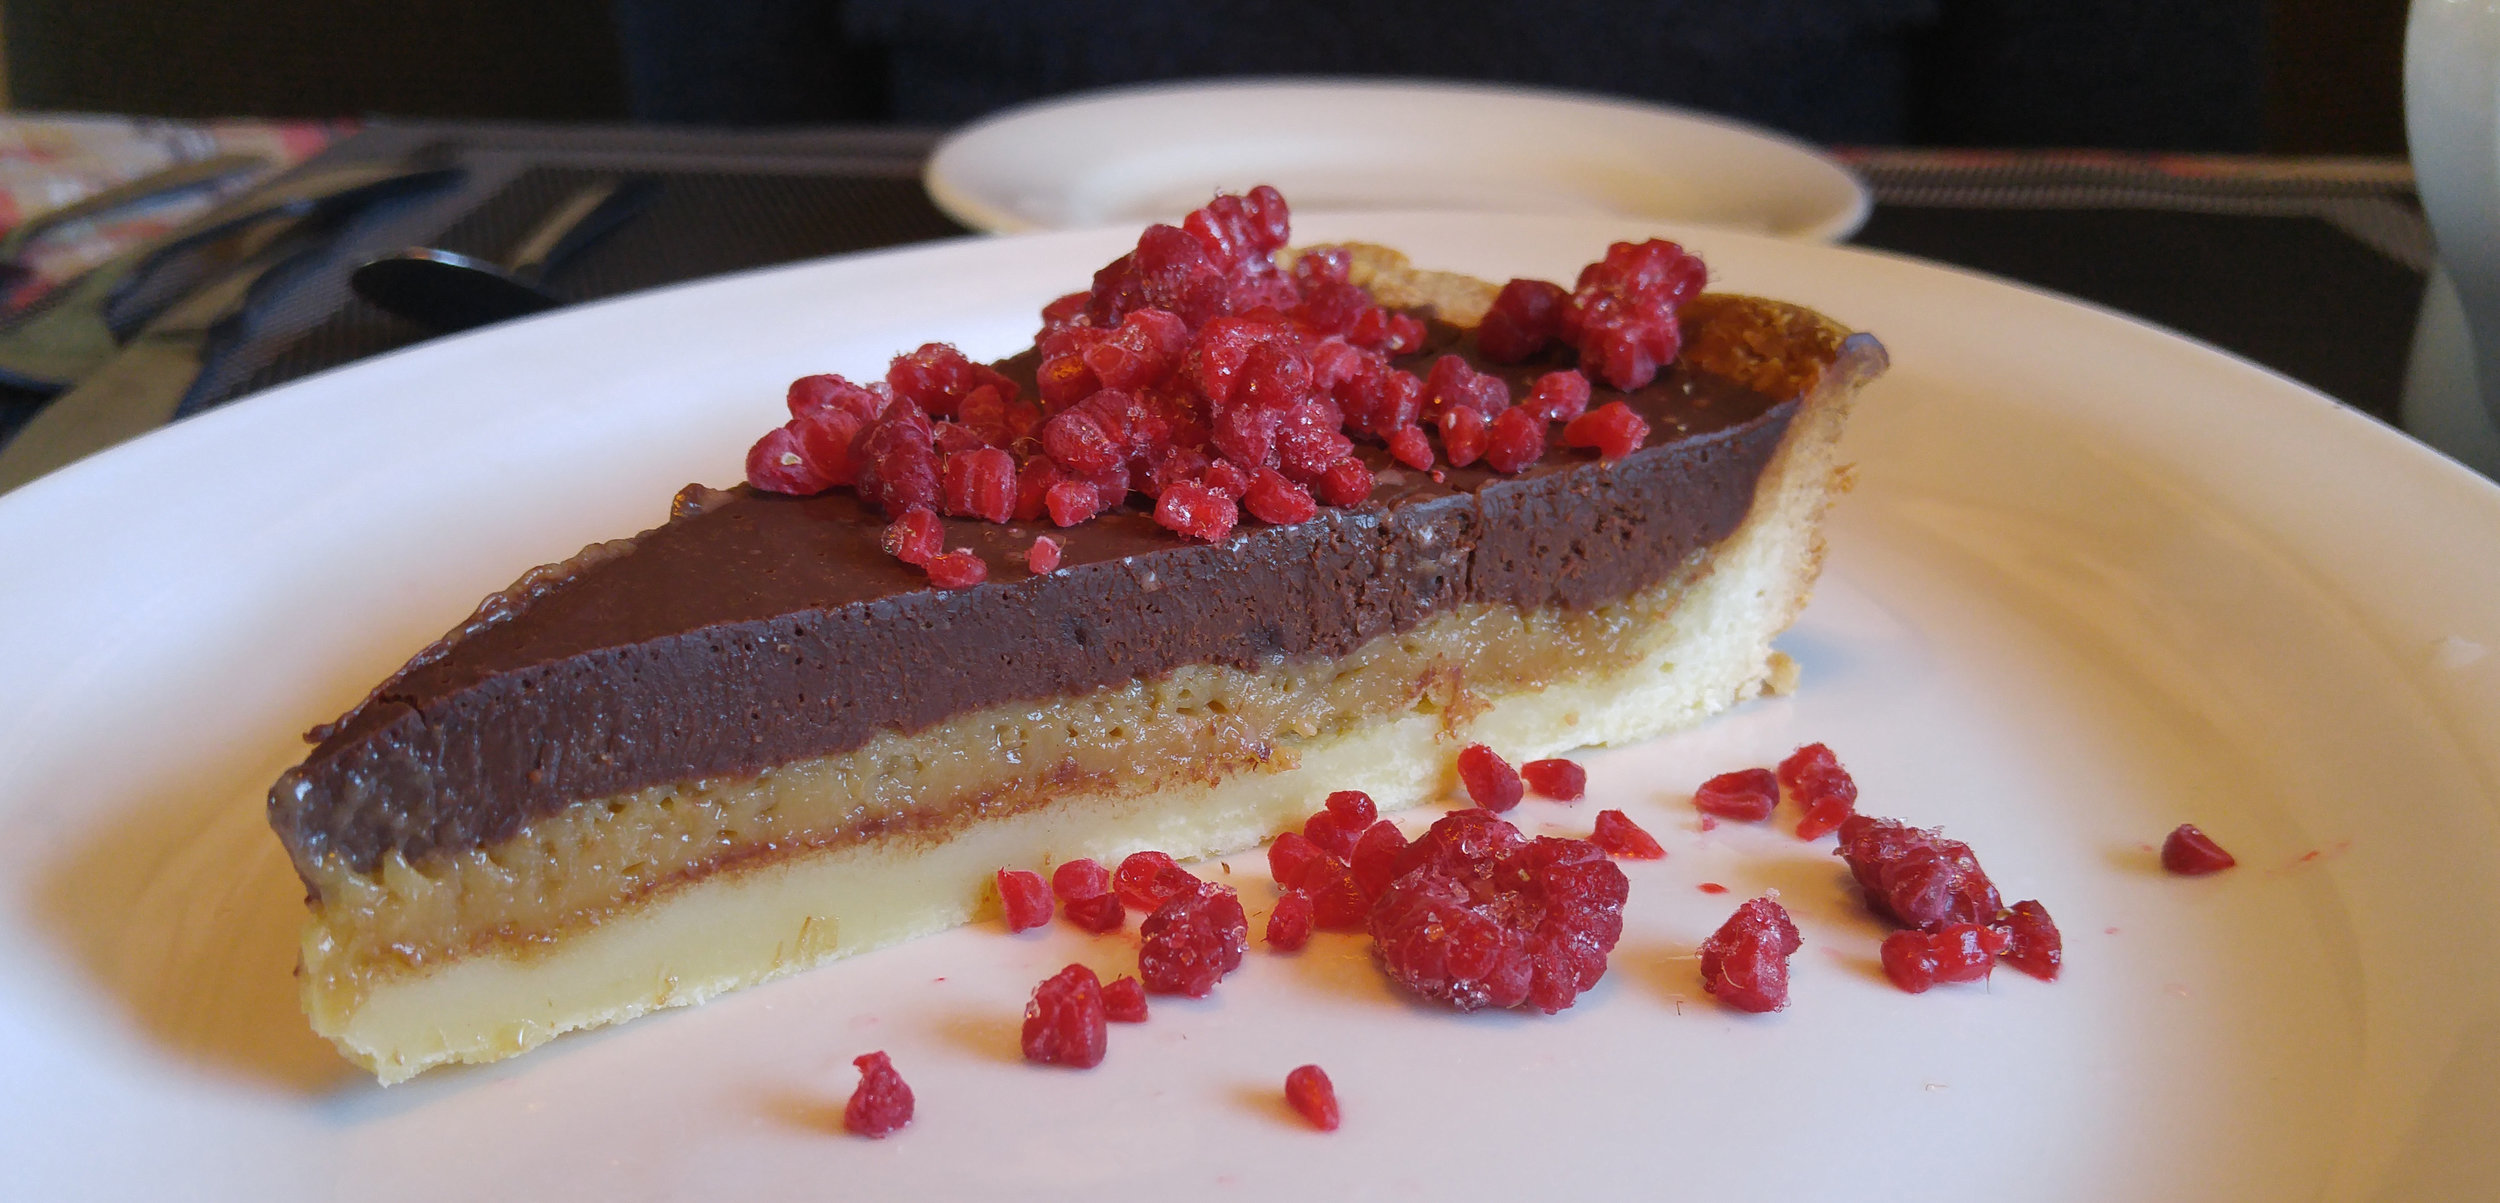 A maple tart with chocolate ganache and raspberry crumbs.